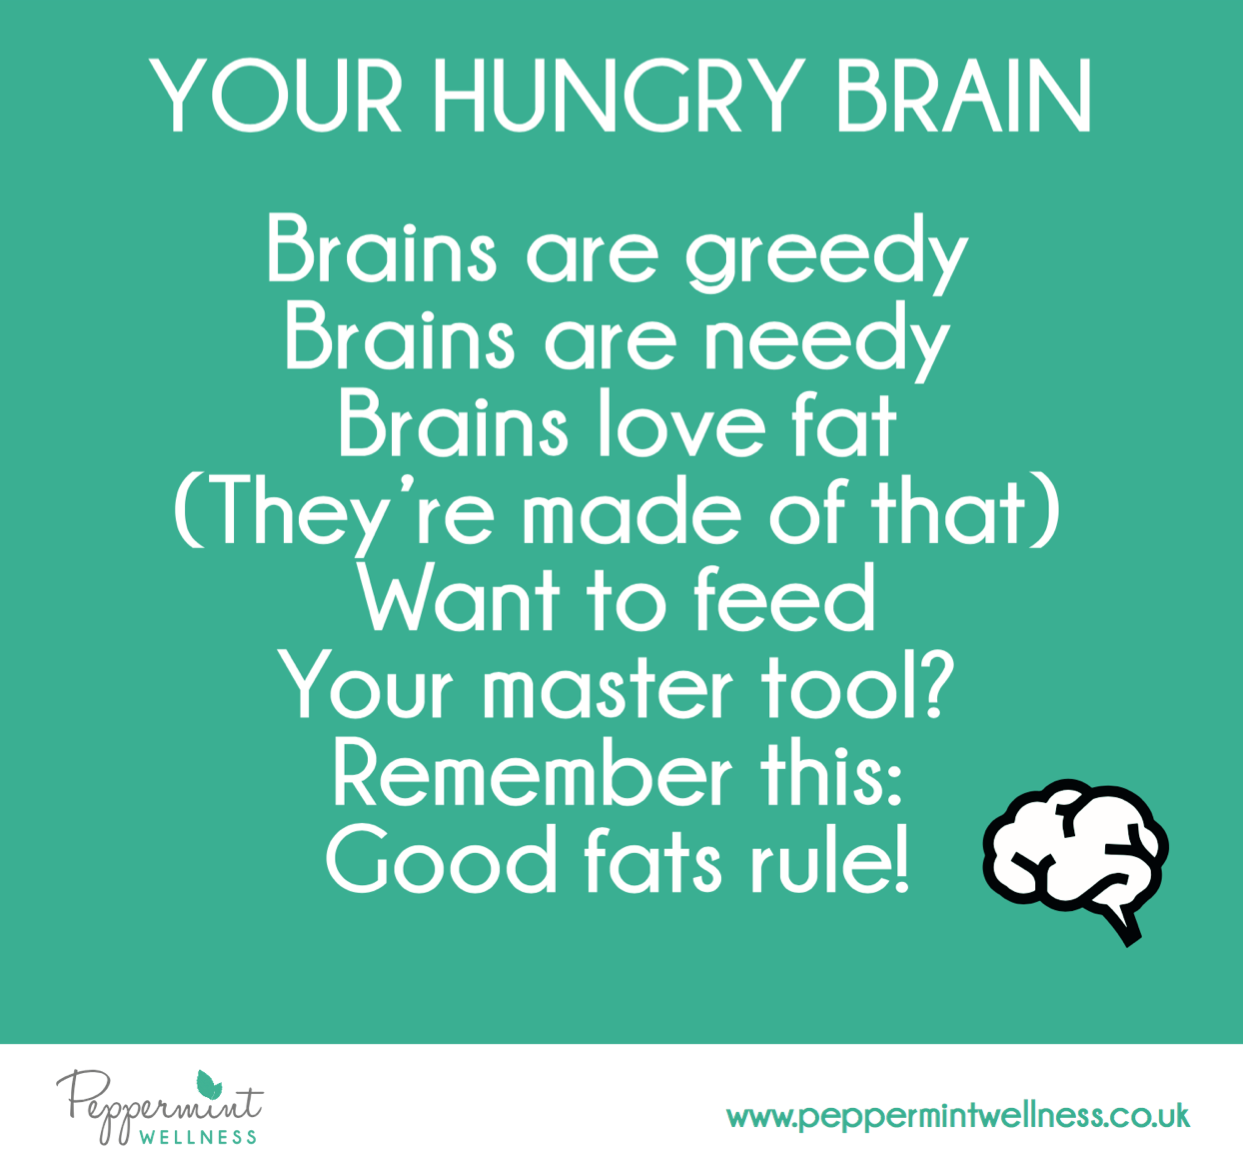 Your Hungry Brain